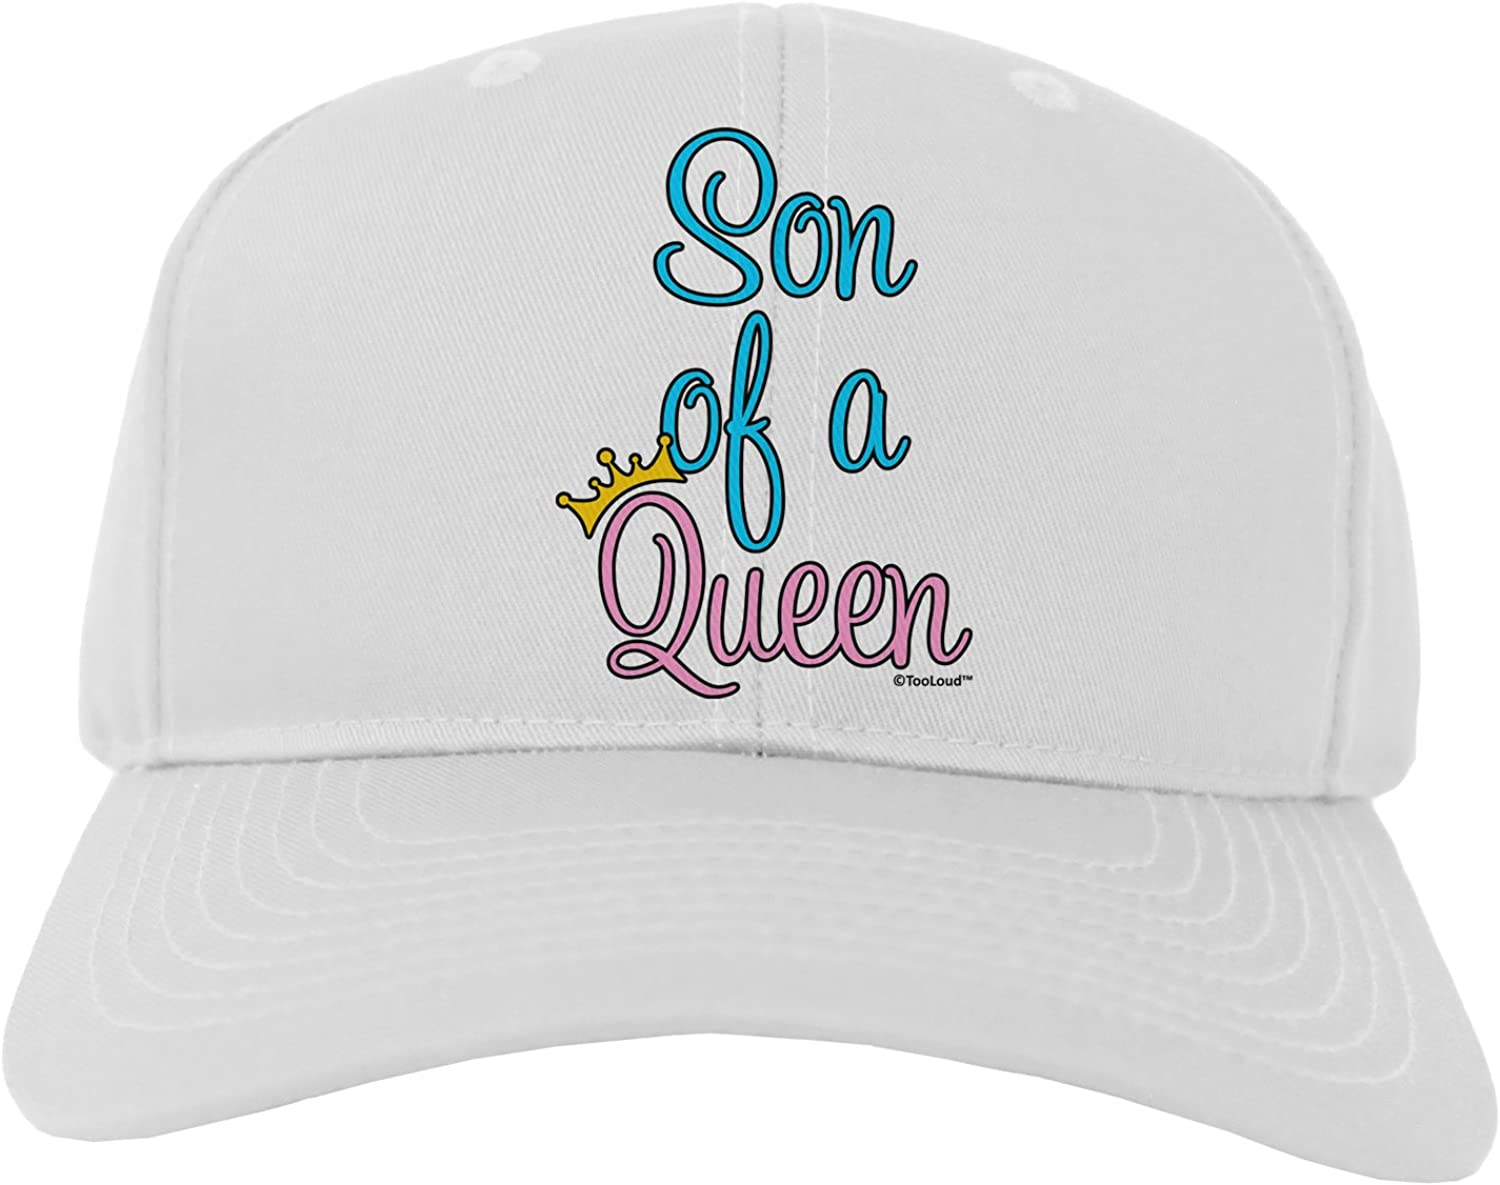 Matching Mom and Son Design Sweatshirt TooLoud Son of a Queen